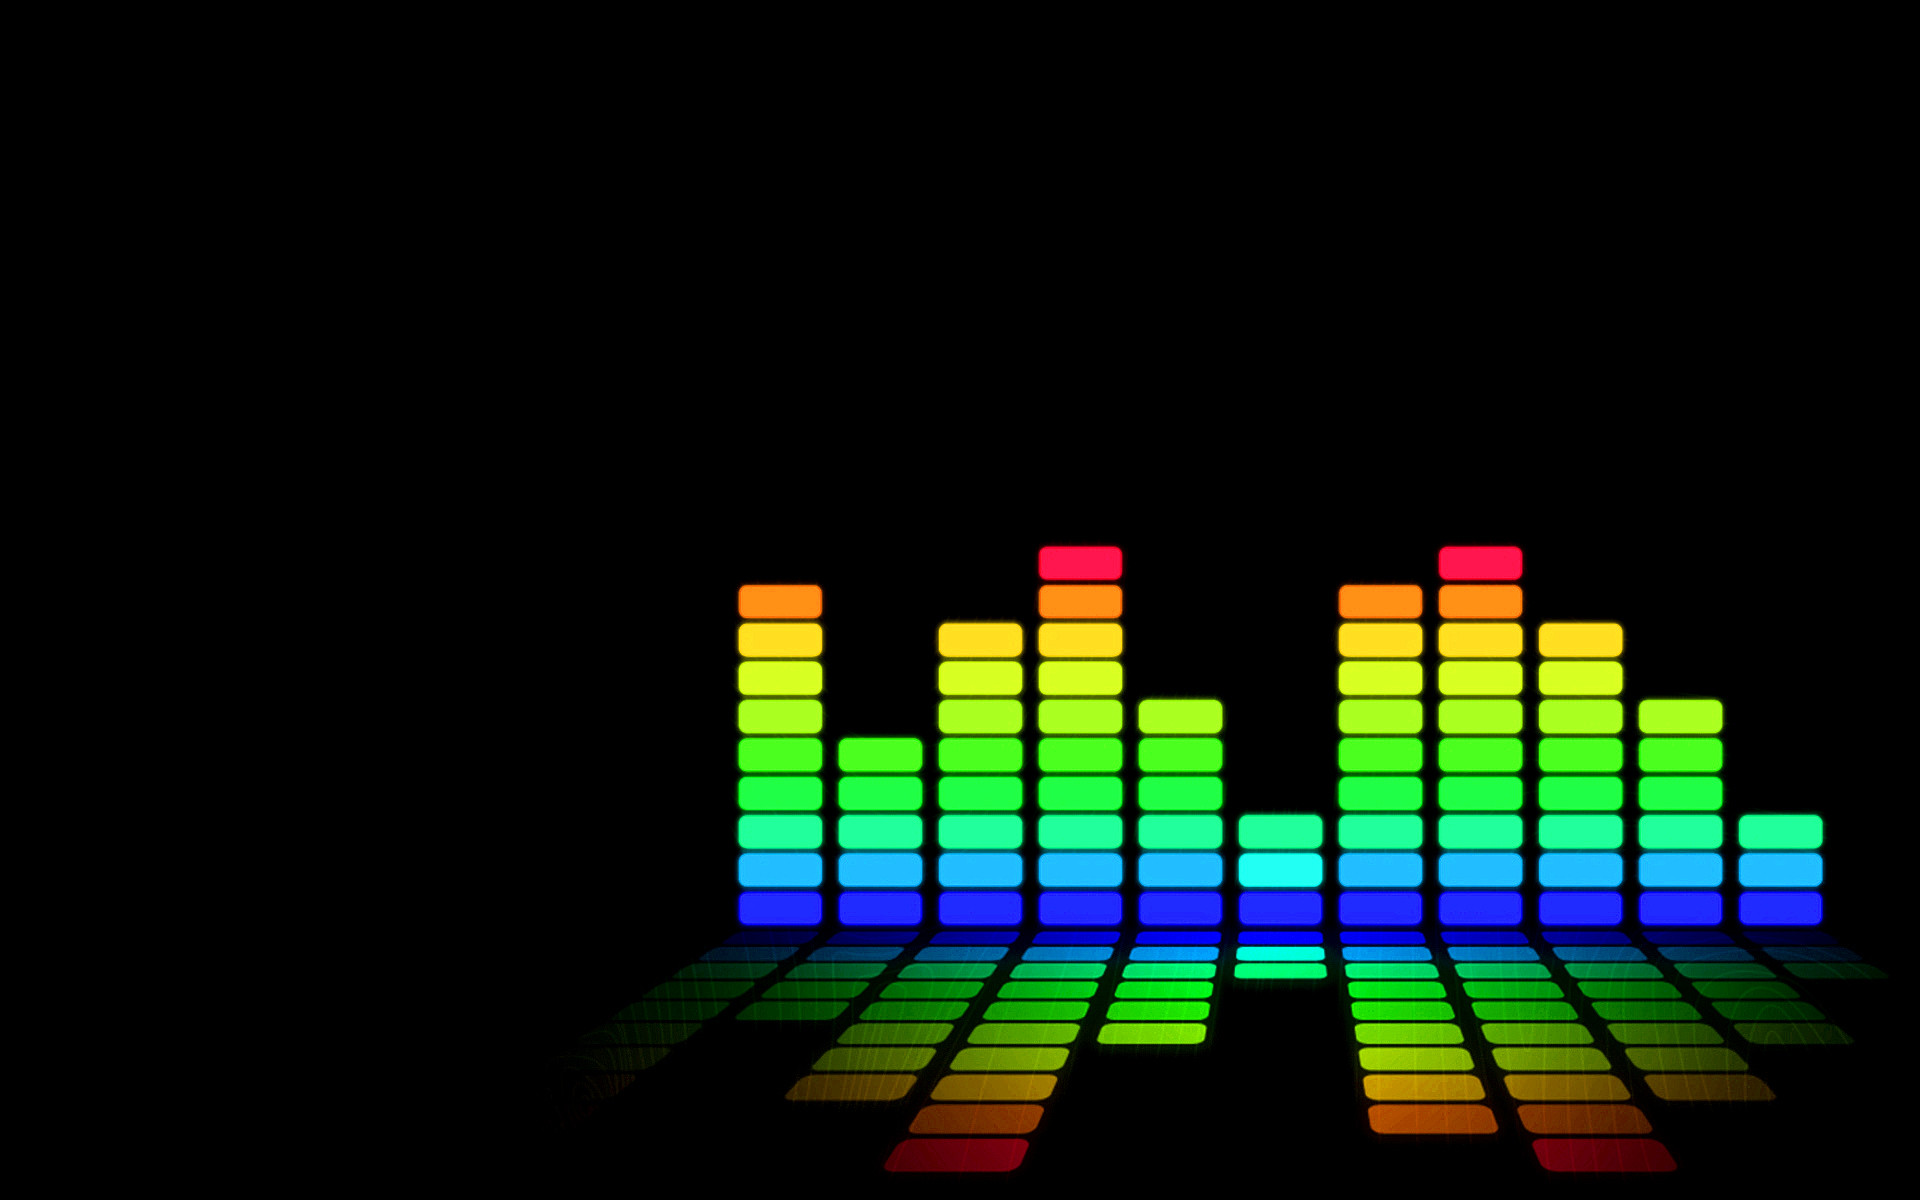 cool music background wallpapers 52 images